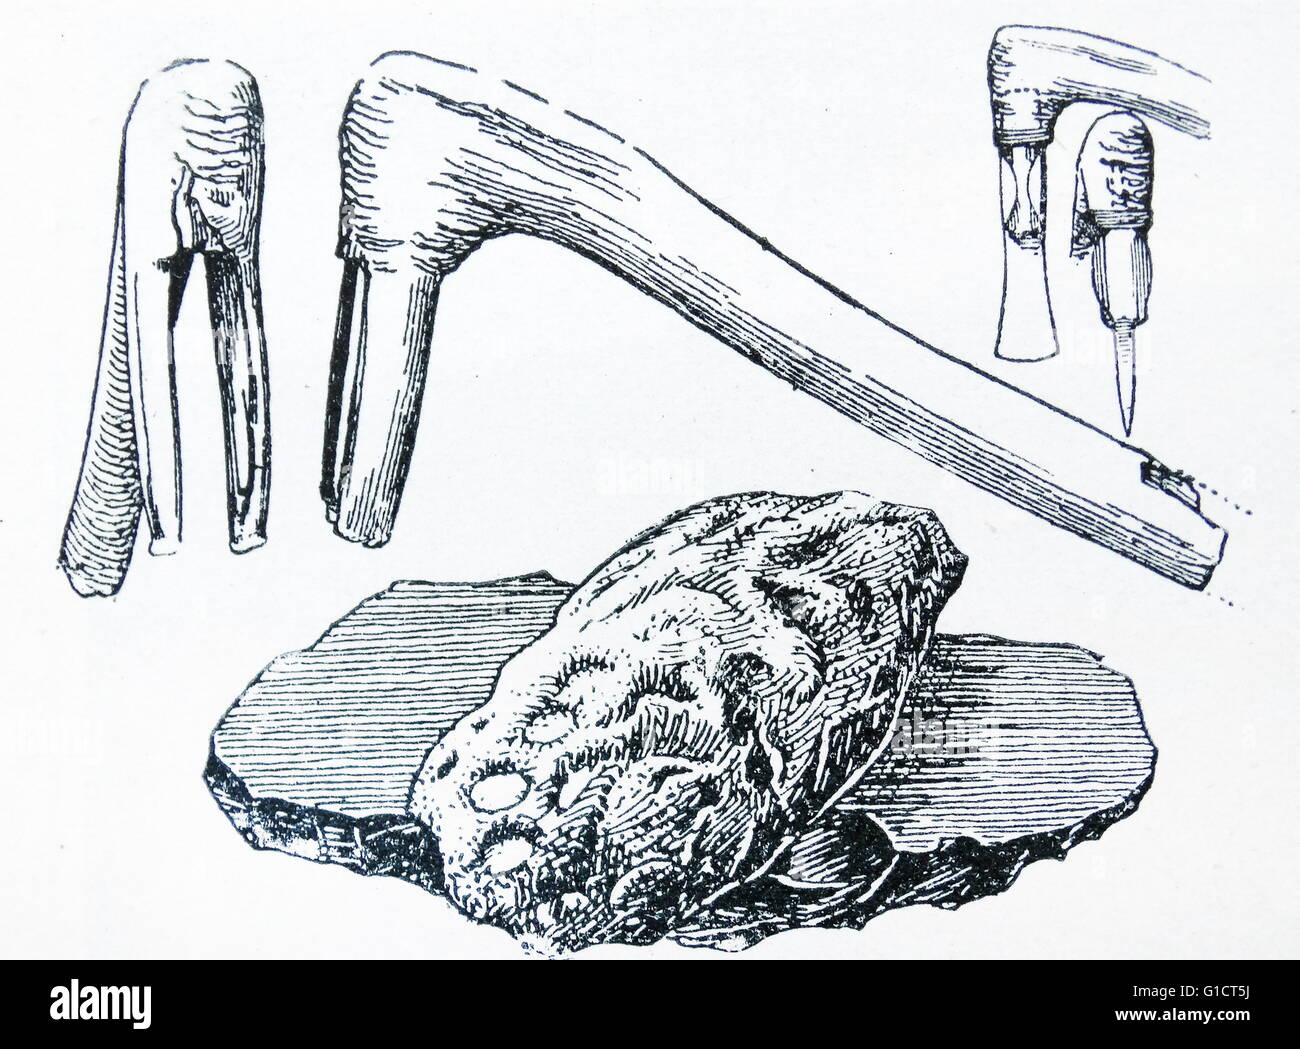 Illustration depicting implements of the stone age - Stock Image